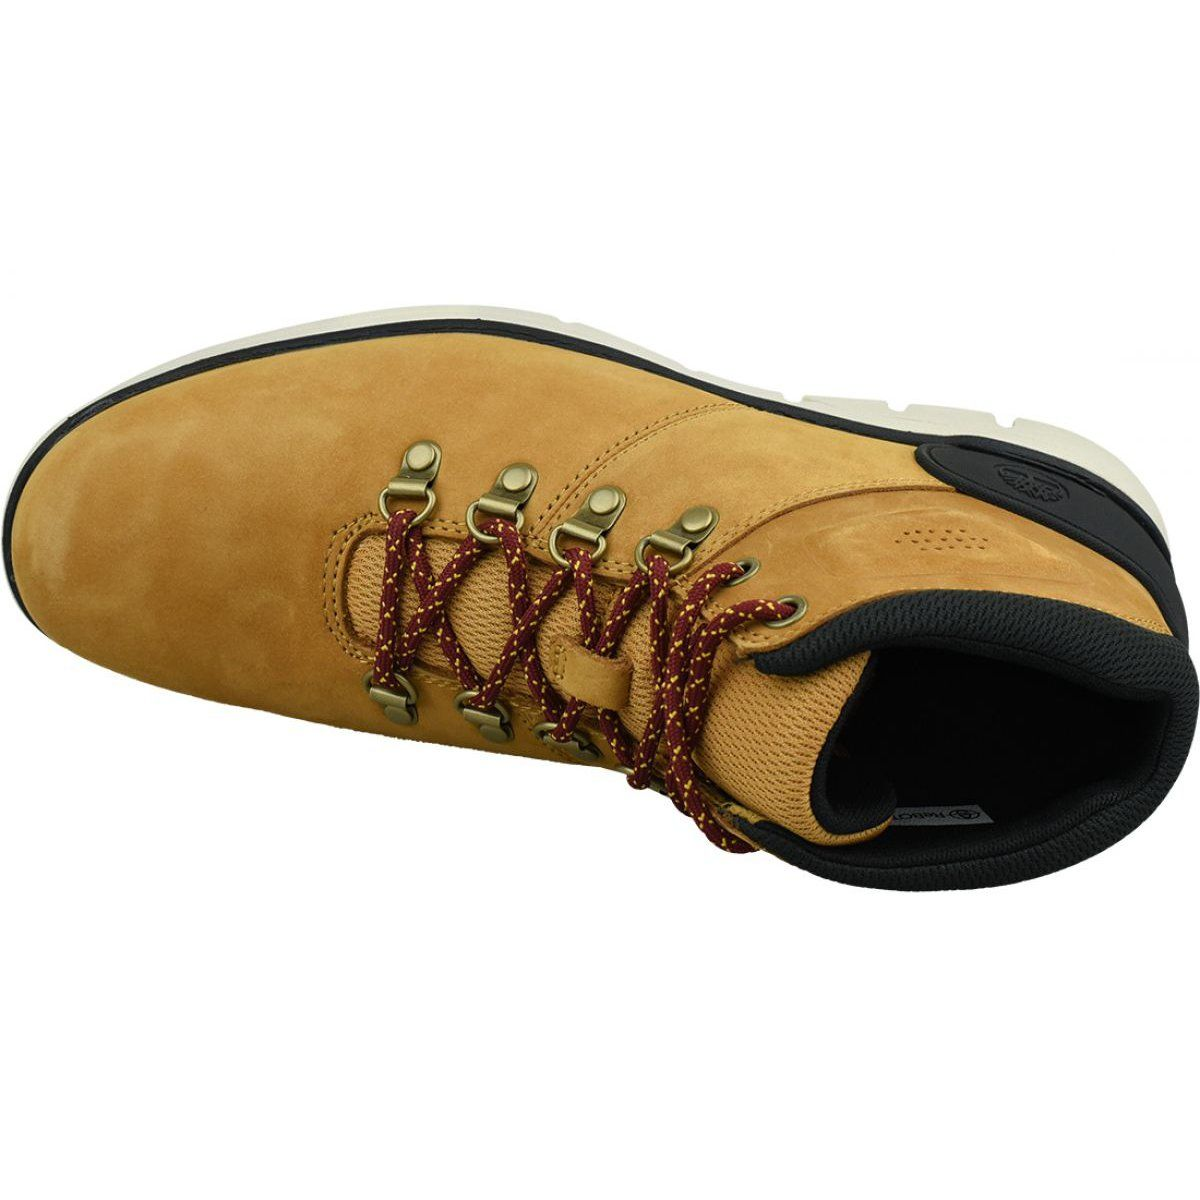 Timberland Bradstreet Hiker M A26yz Shoes Orange Timberlands Shoes Shoes Boots